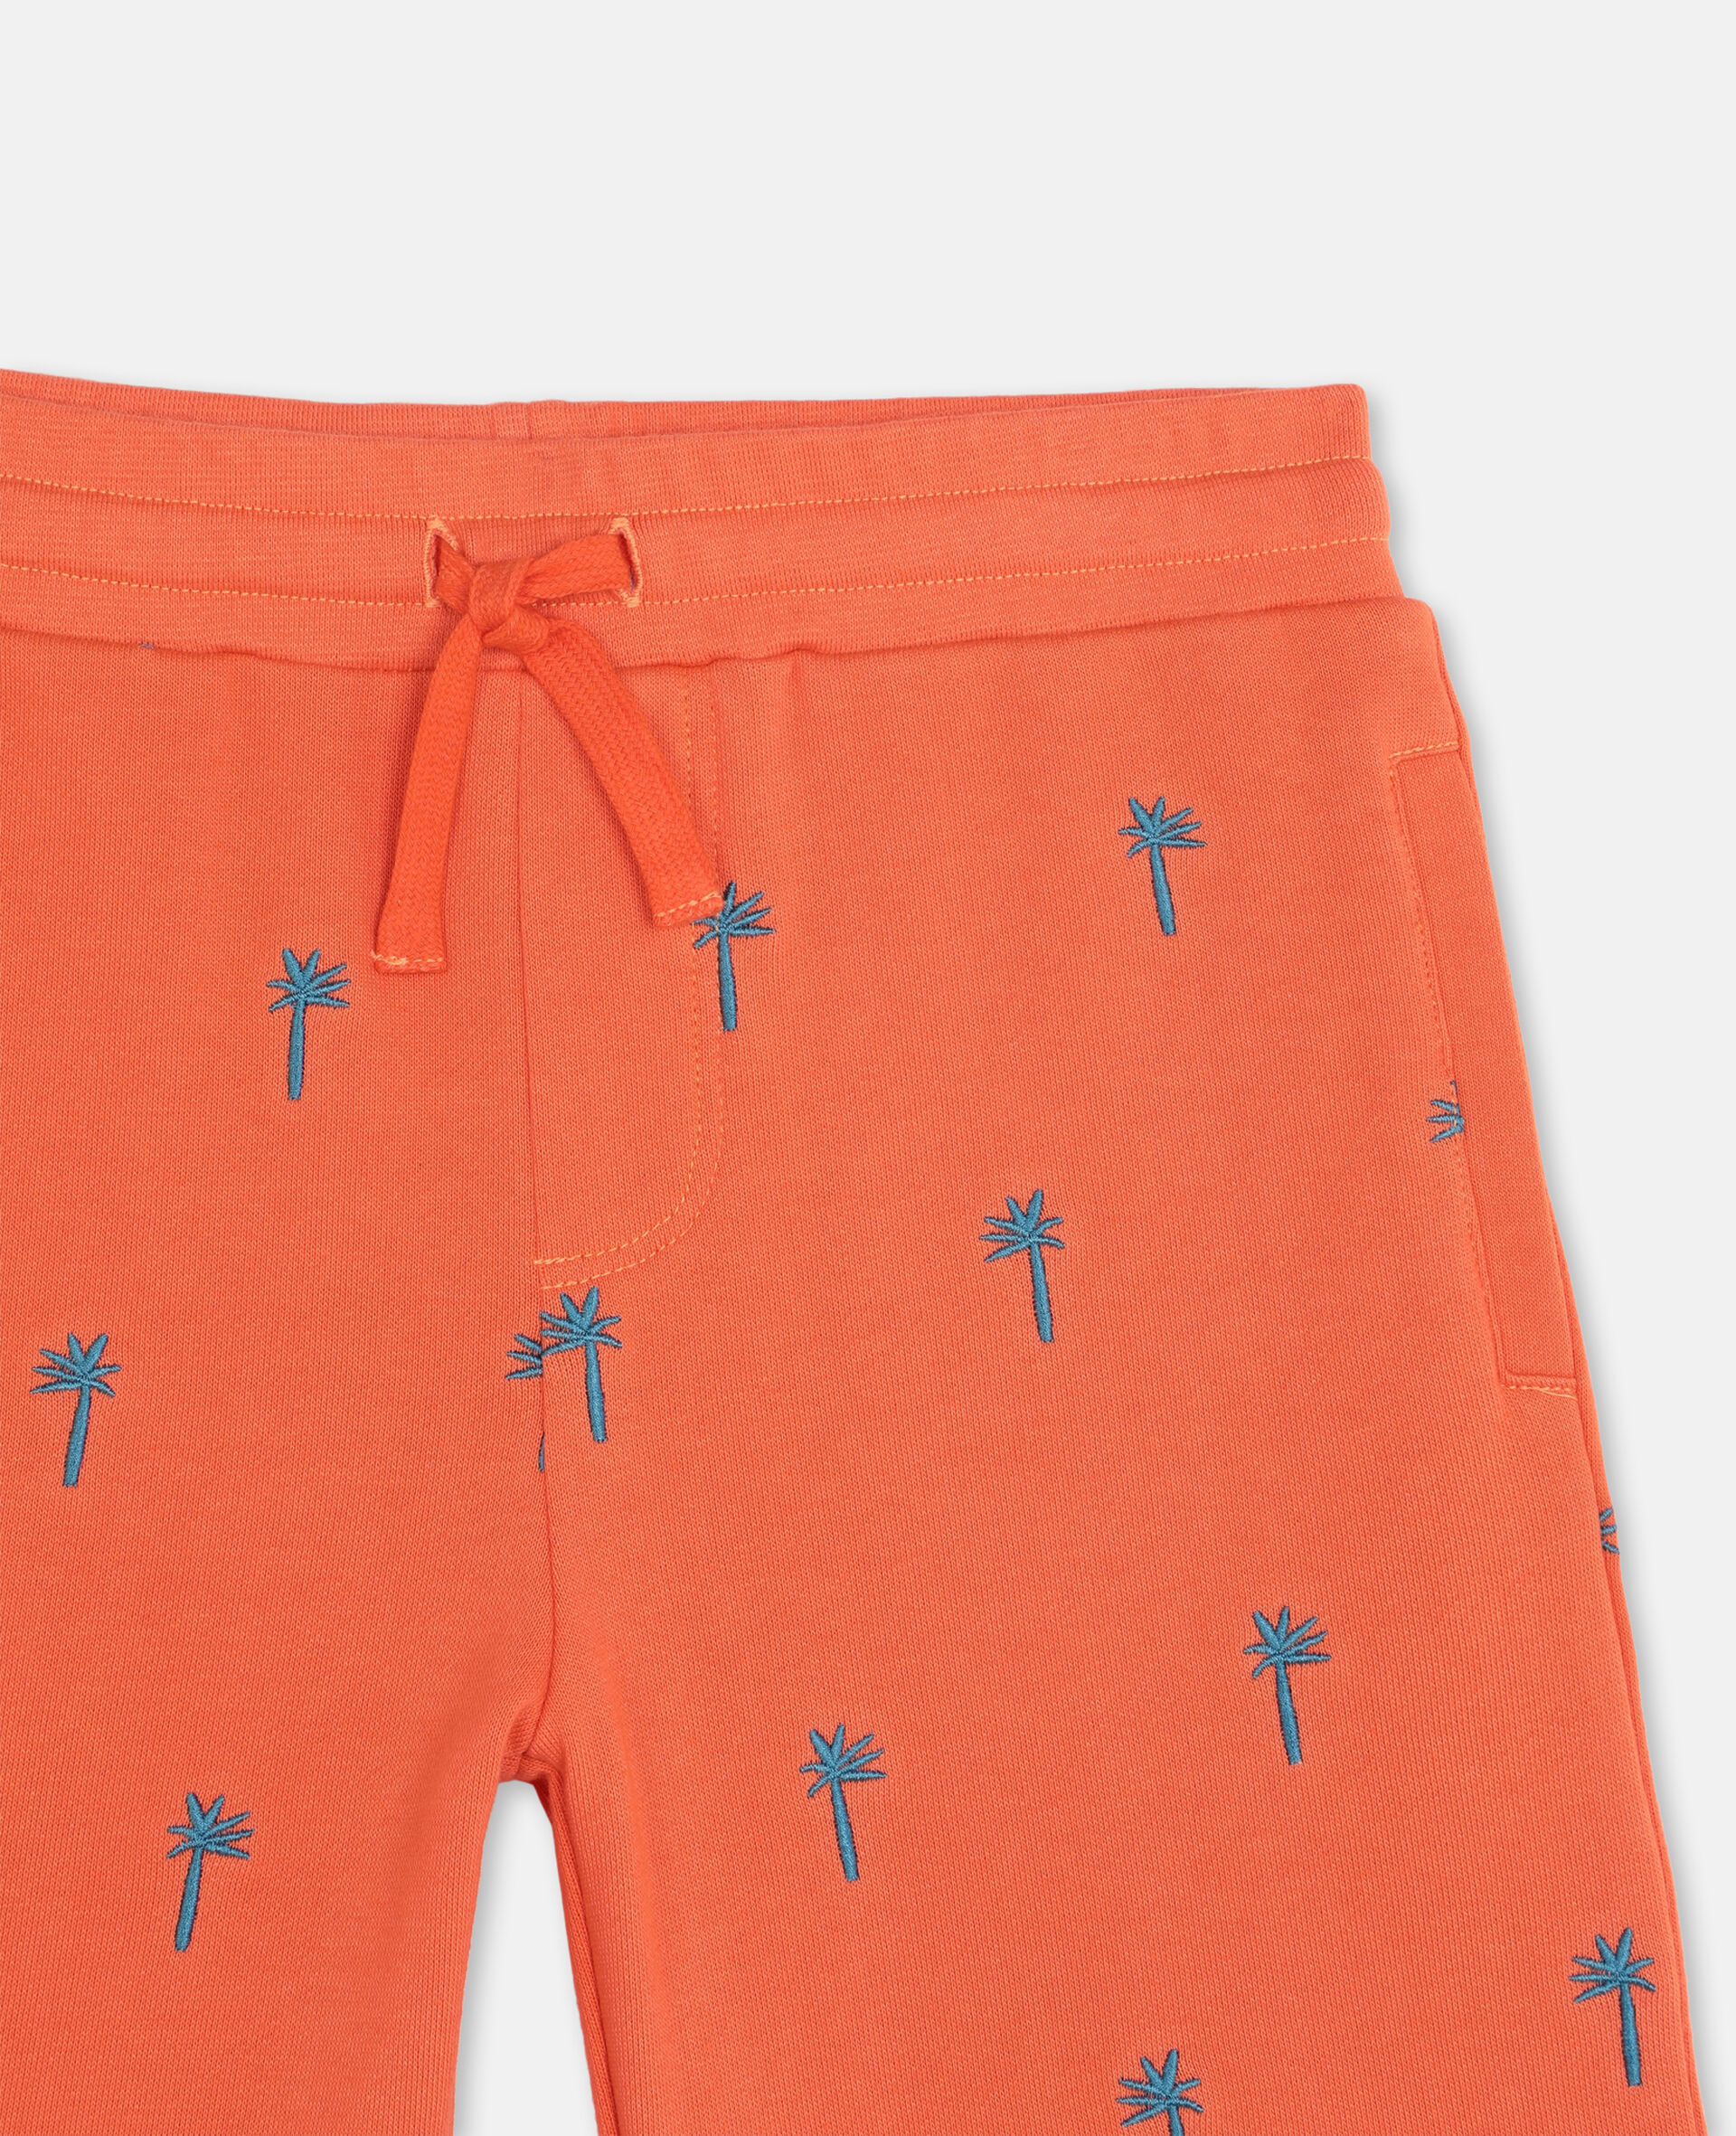 Embroidered Palm Cotton Shorts-Red-large image number 1